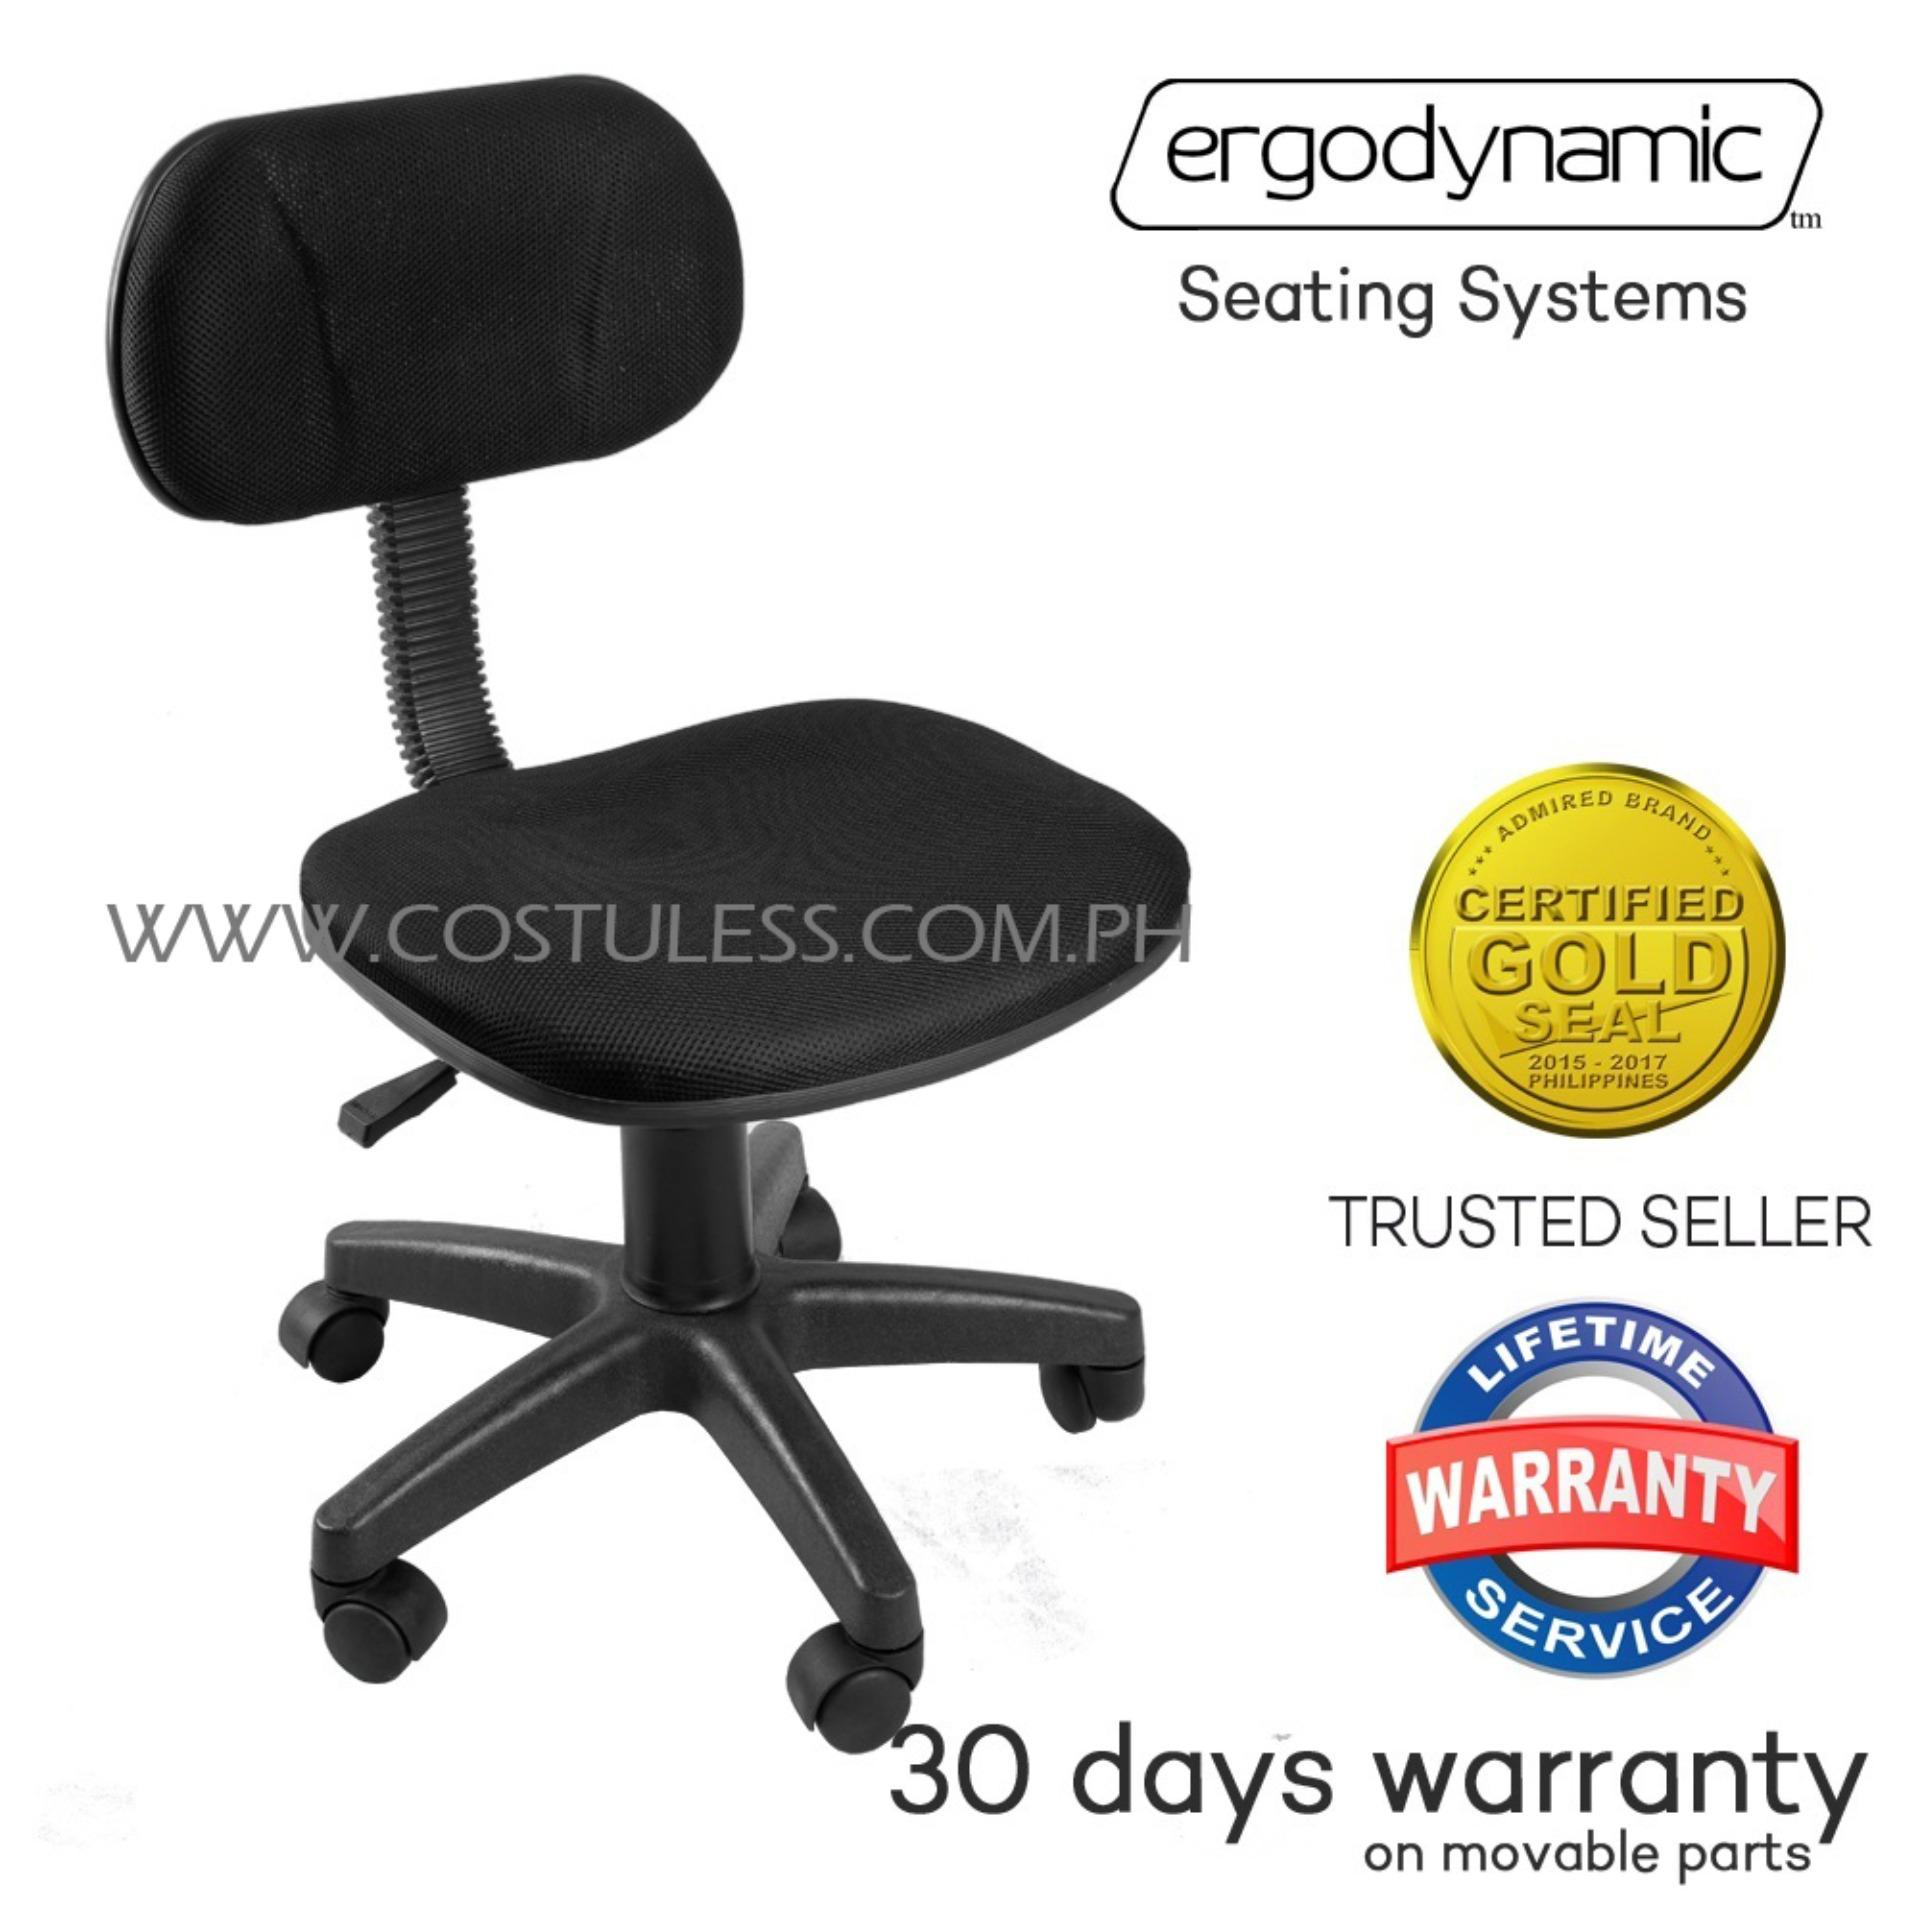 fice Chair for sale fice puter Chair prices brands